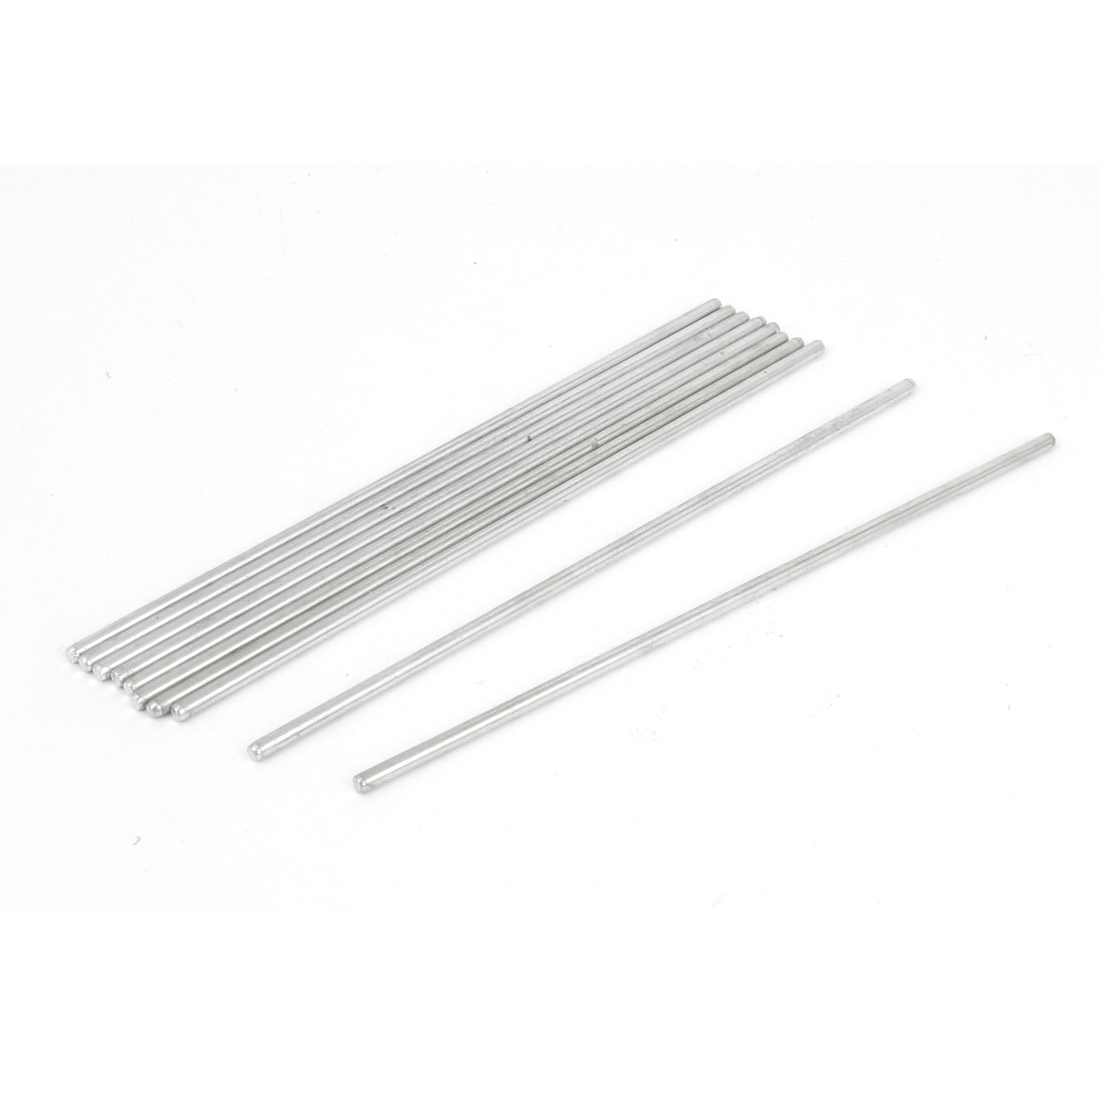 10pcs 2mm x 100mm Metal Round Rod Stock Drill Bar for RC Airplane Model